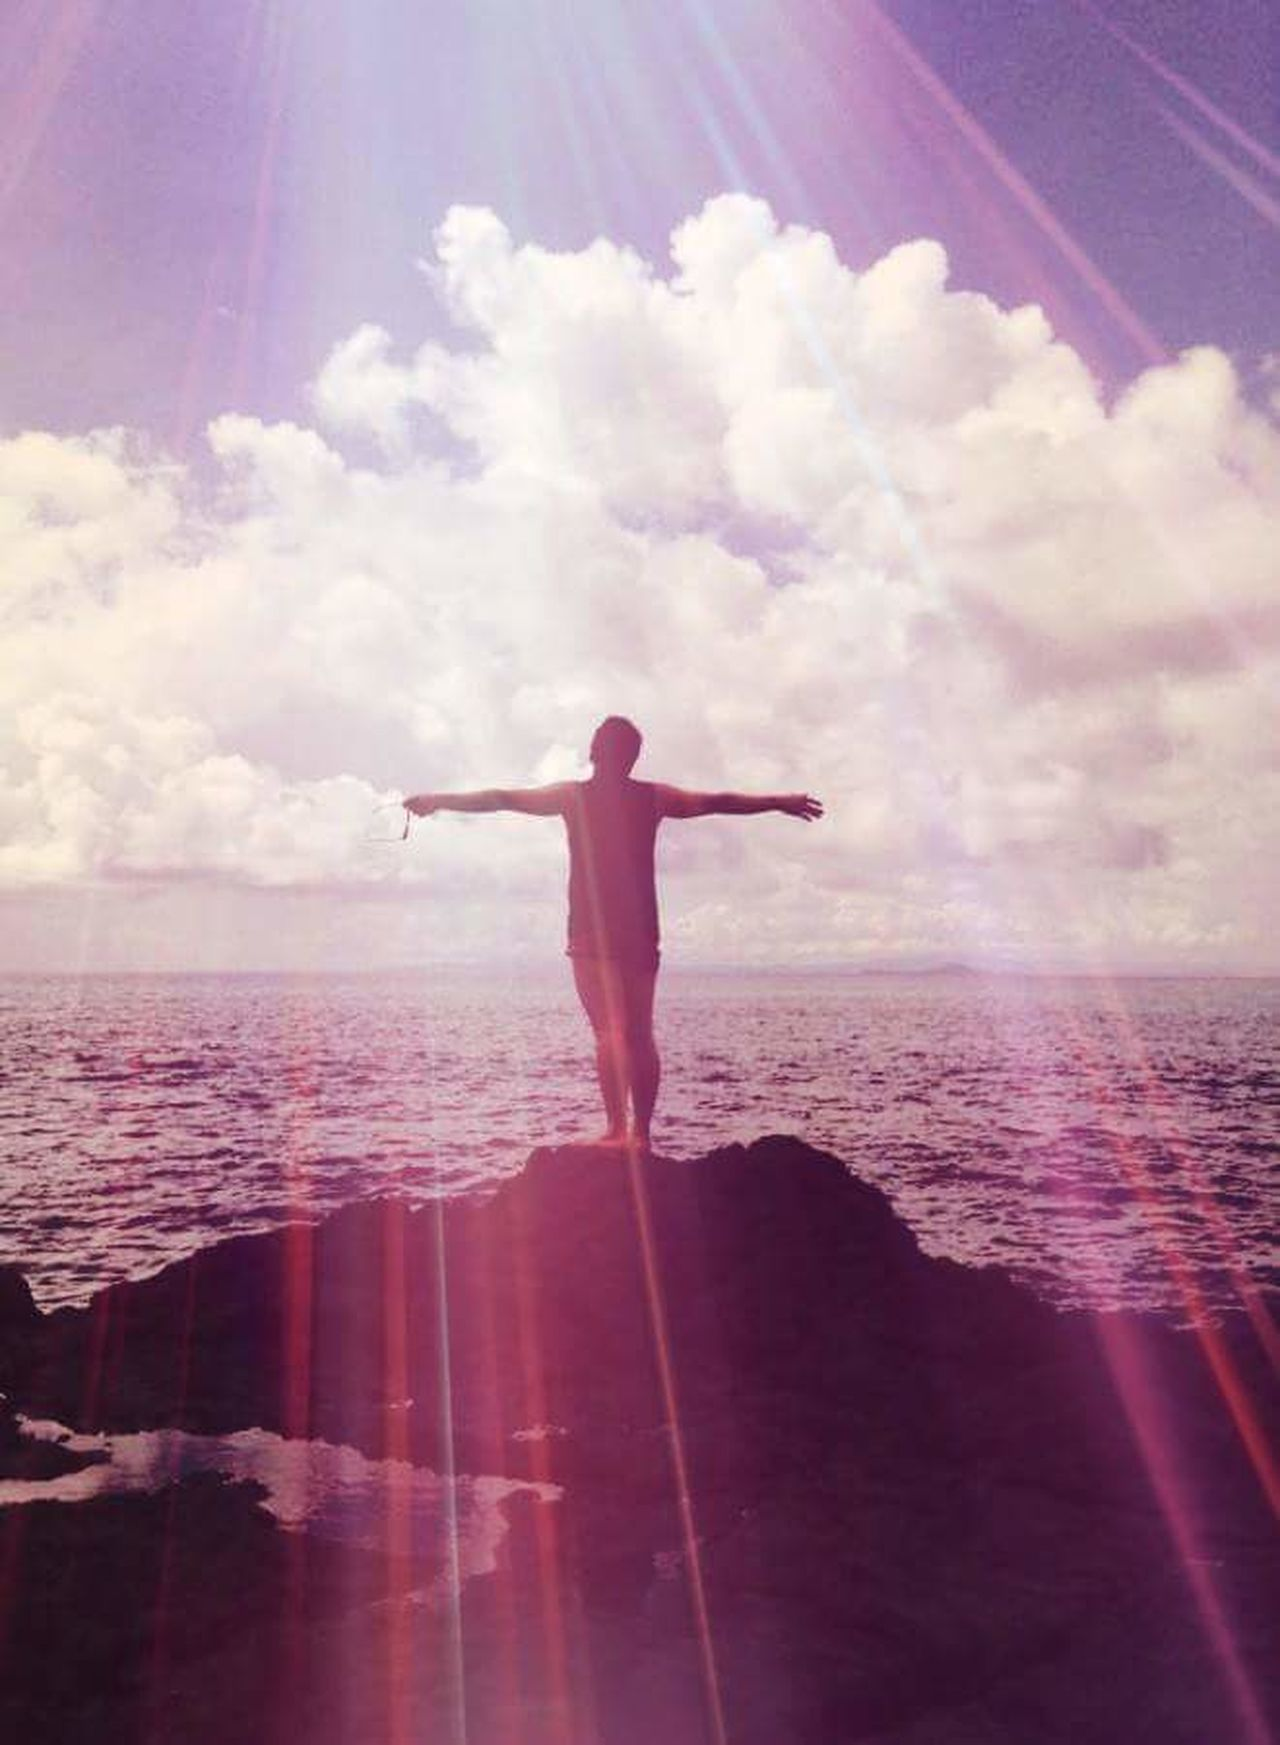 Adults Only Vacations Inspiration Standing Only Women Freedom Cloud - Sky Sky One Person Spirituality Full Length Sea One Woman Only Carefree Outdoors Wellbeing Rear View Adult Tropical Climate Arms Outstretched